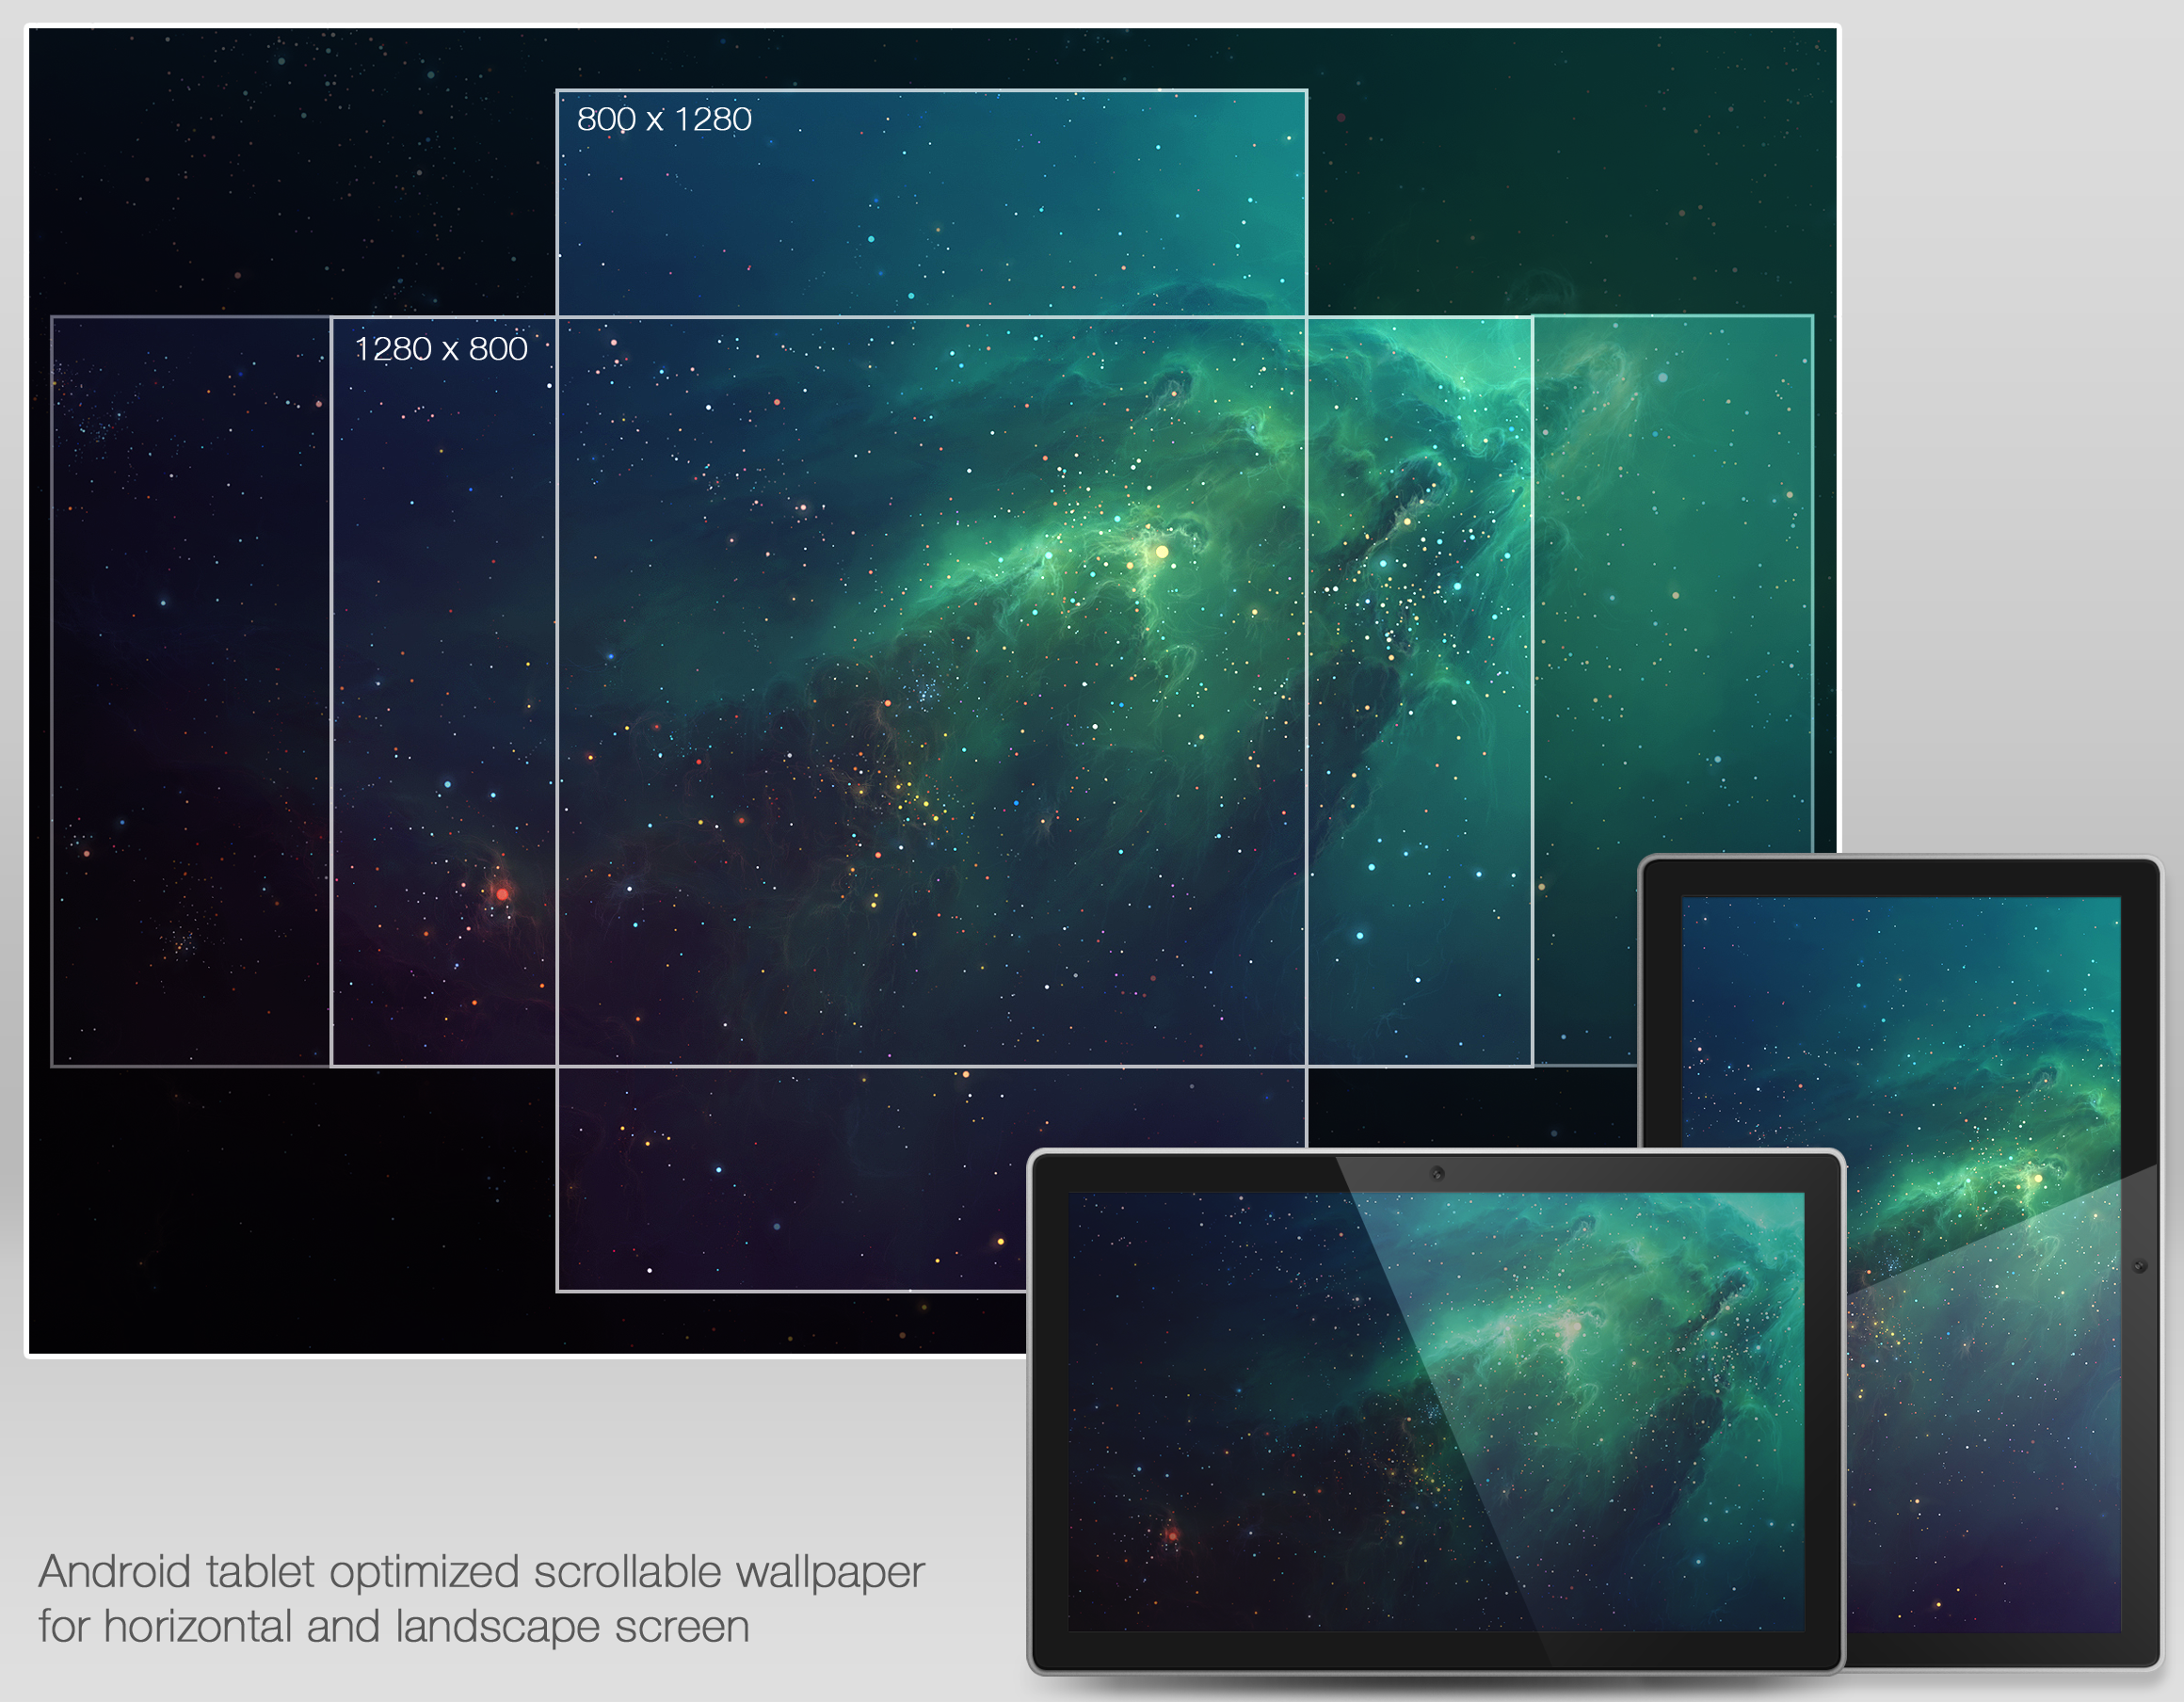 Nebula wallpaper for Android by olympmedia